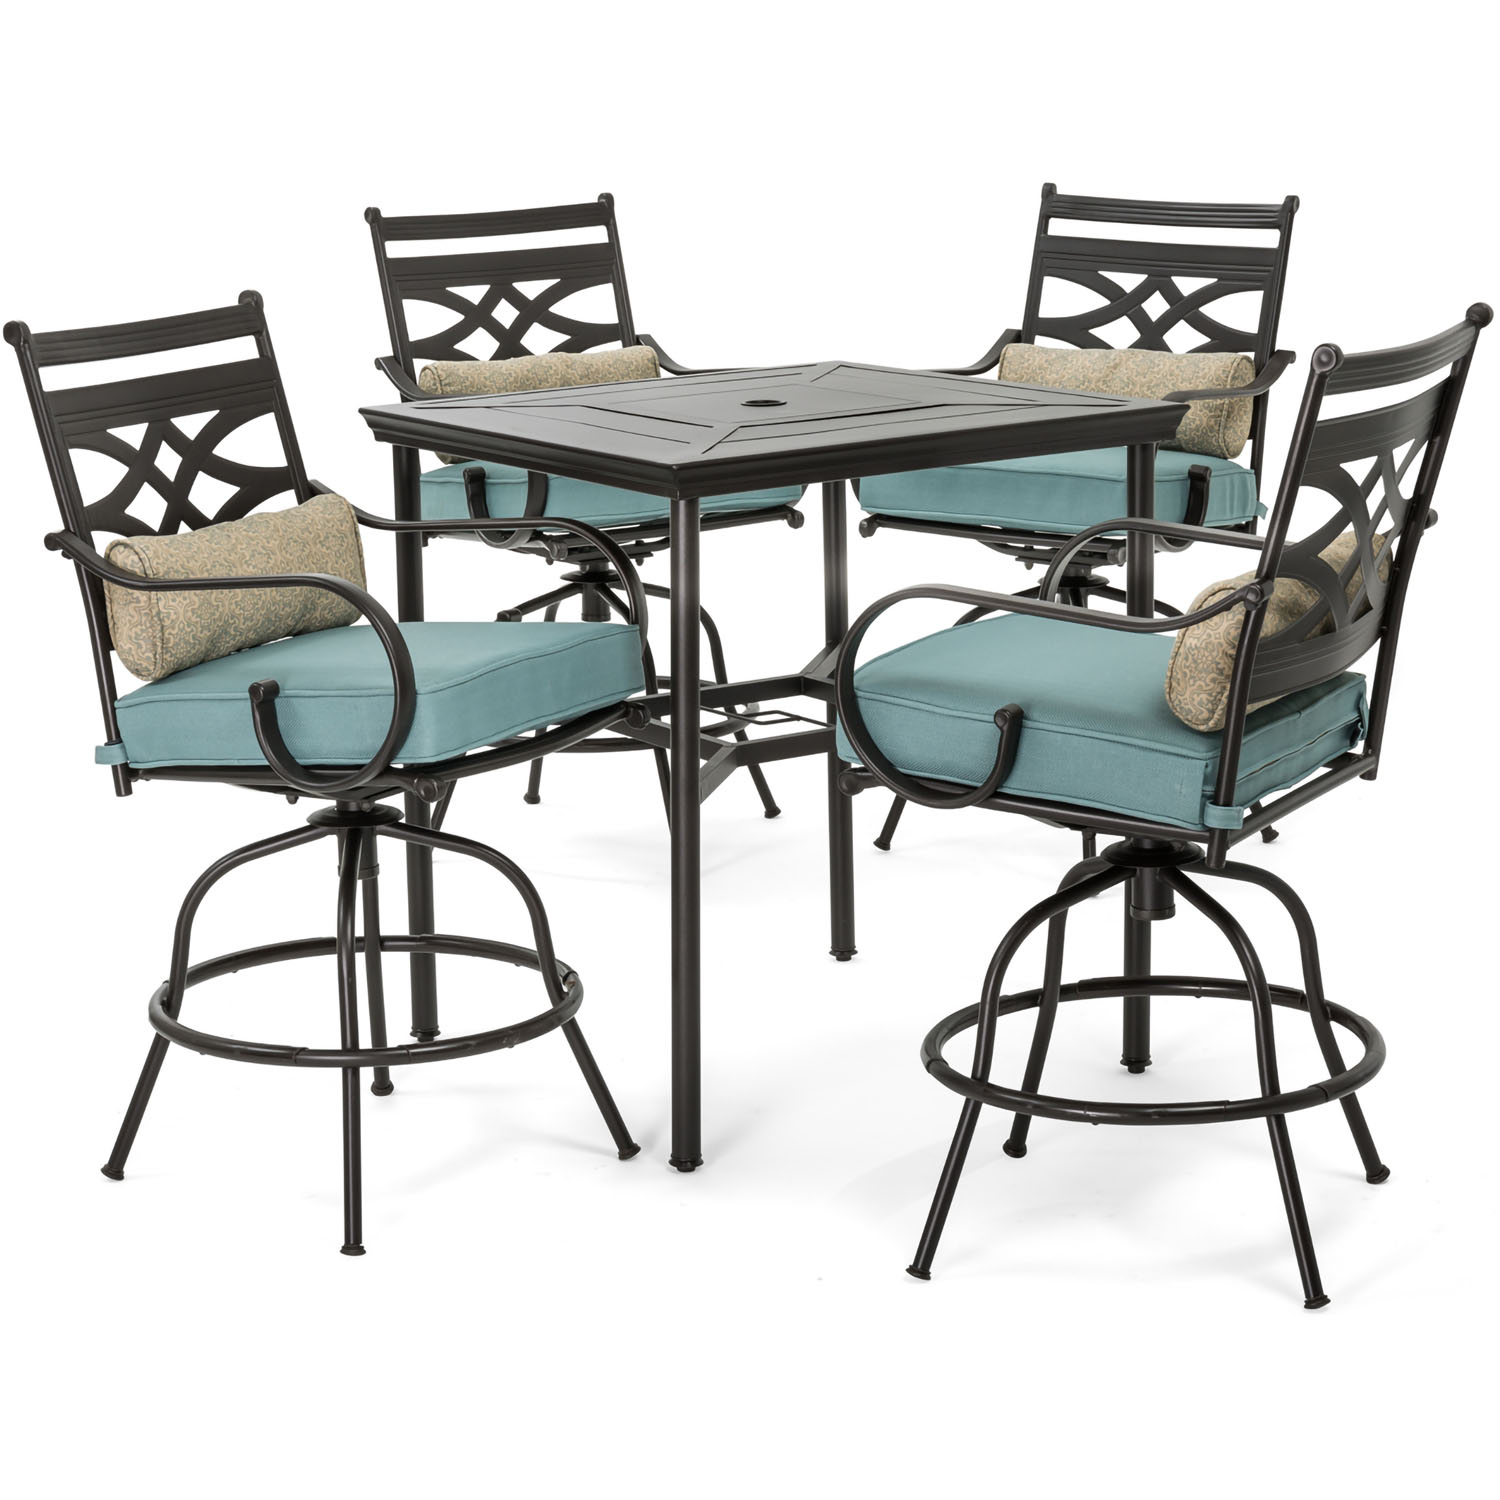 Picture of: Hanover Montclair 5 Piece High Dining Patio Set In Ocean Blue With 4 Swivel Chairs And A 33 In Counter Height Dining Table Walmart Com Walmart Com